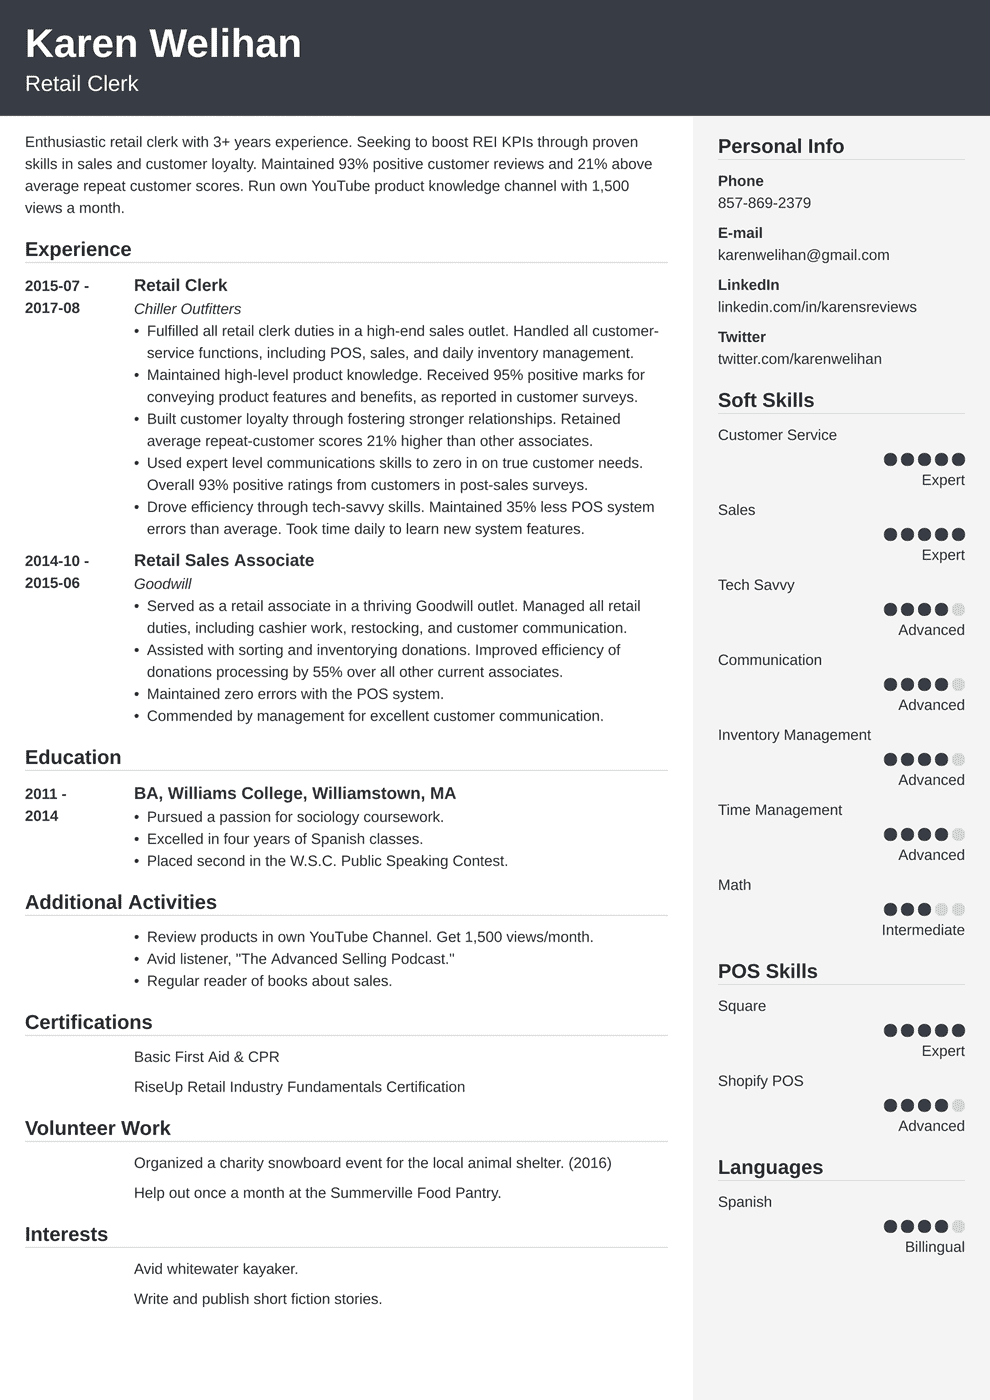 retail resume template cubic in 2020 Retail resume